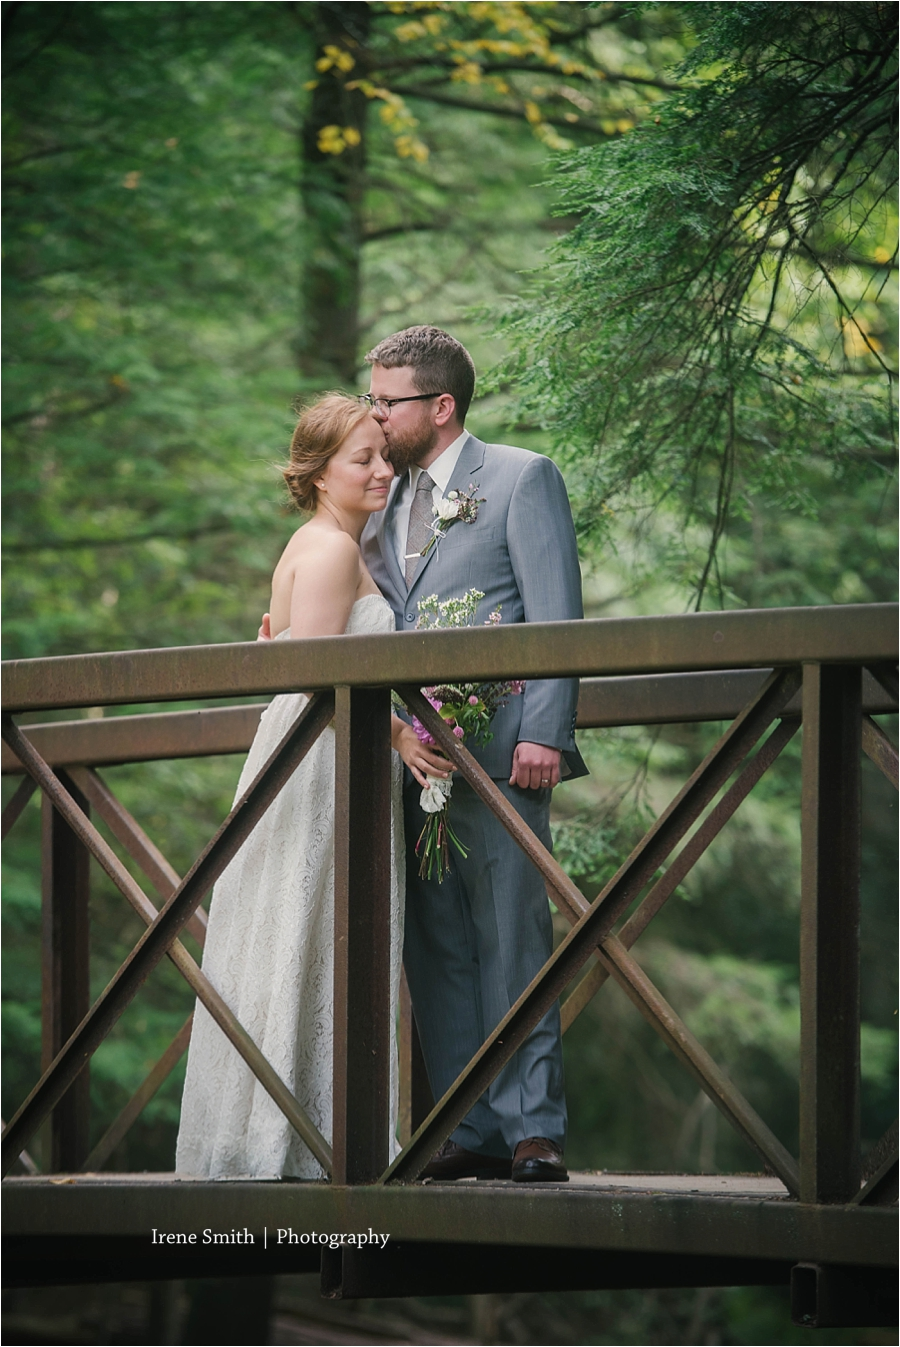 Cooks-Forest-Wedding-Photography-Irene-Smith_0015.jpg